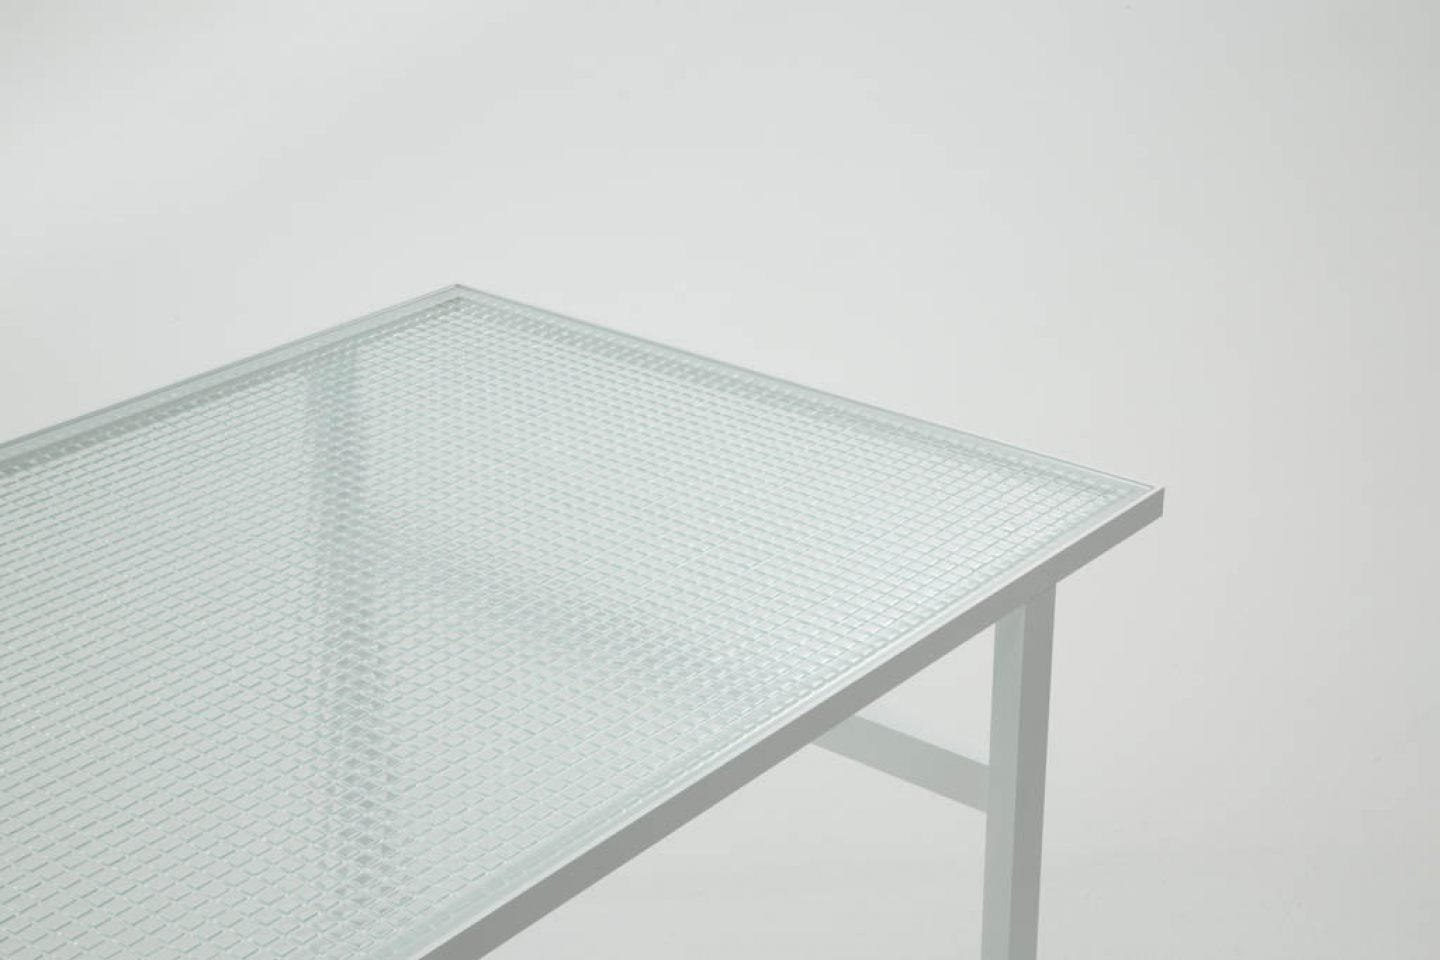 Dilmos-mosaic-glass-table02